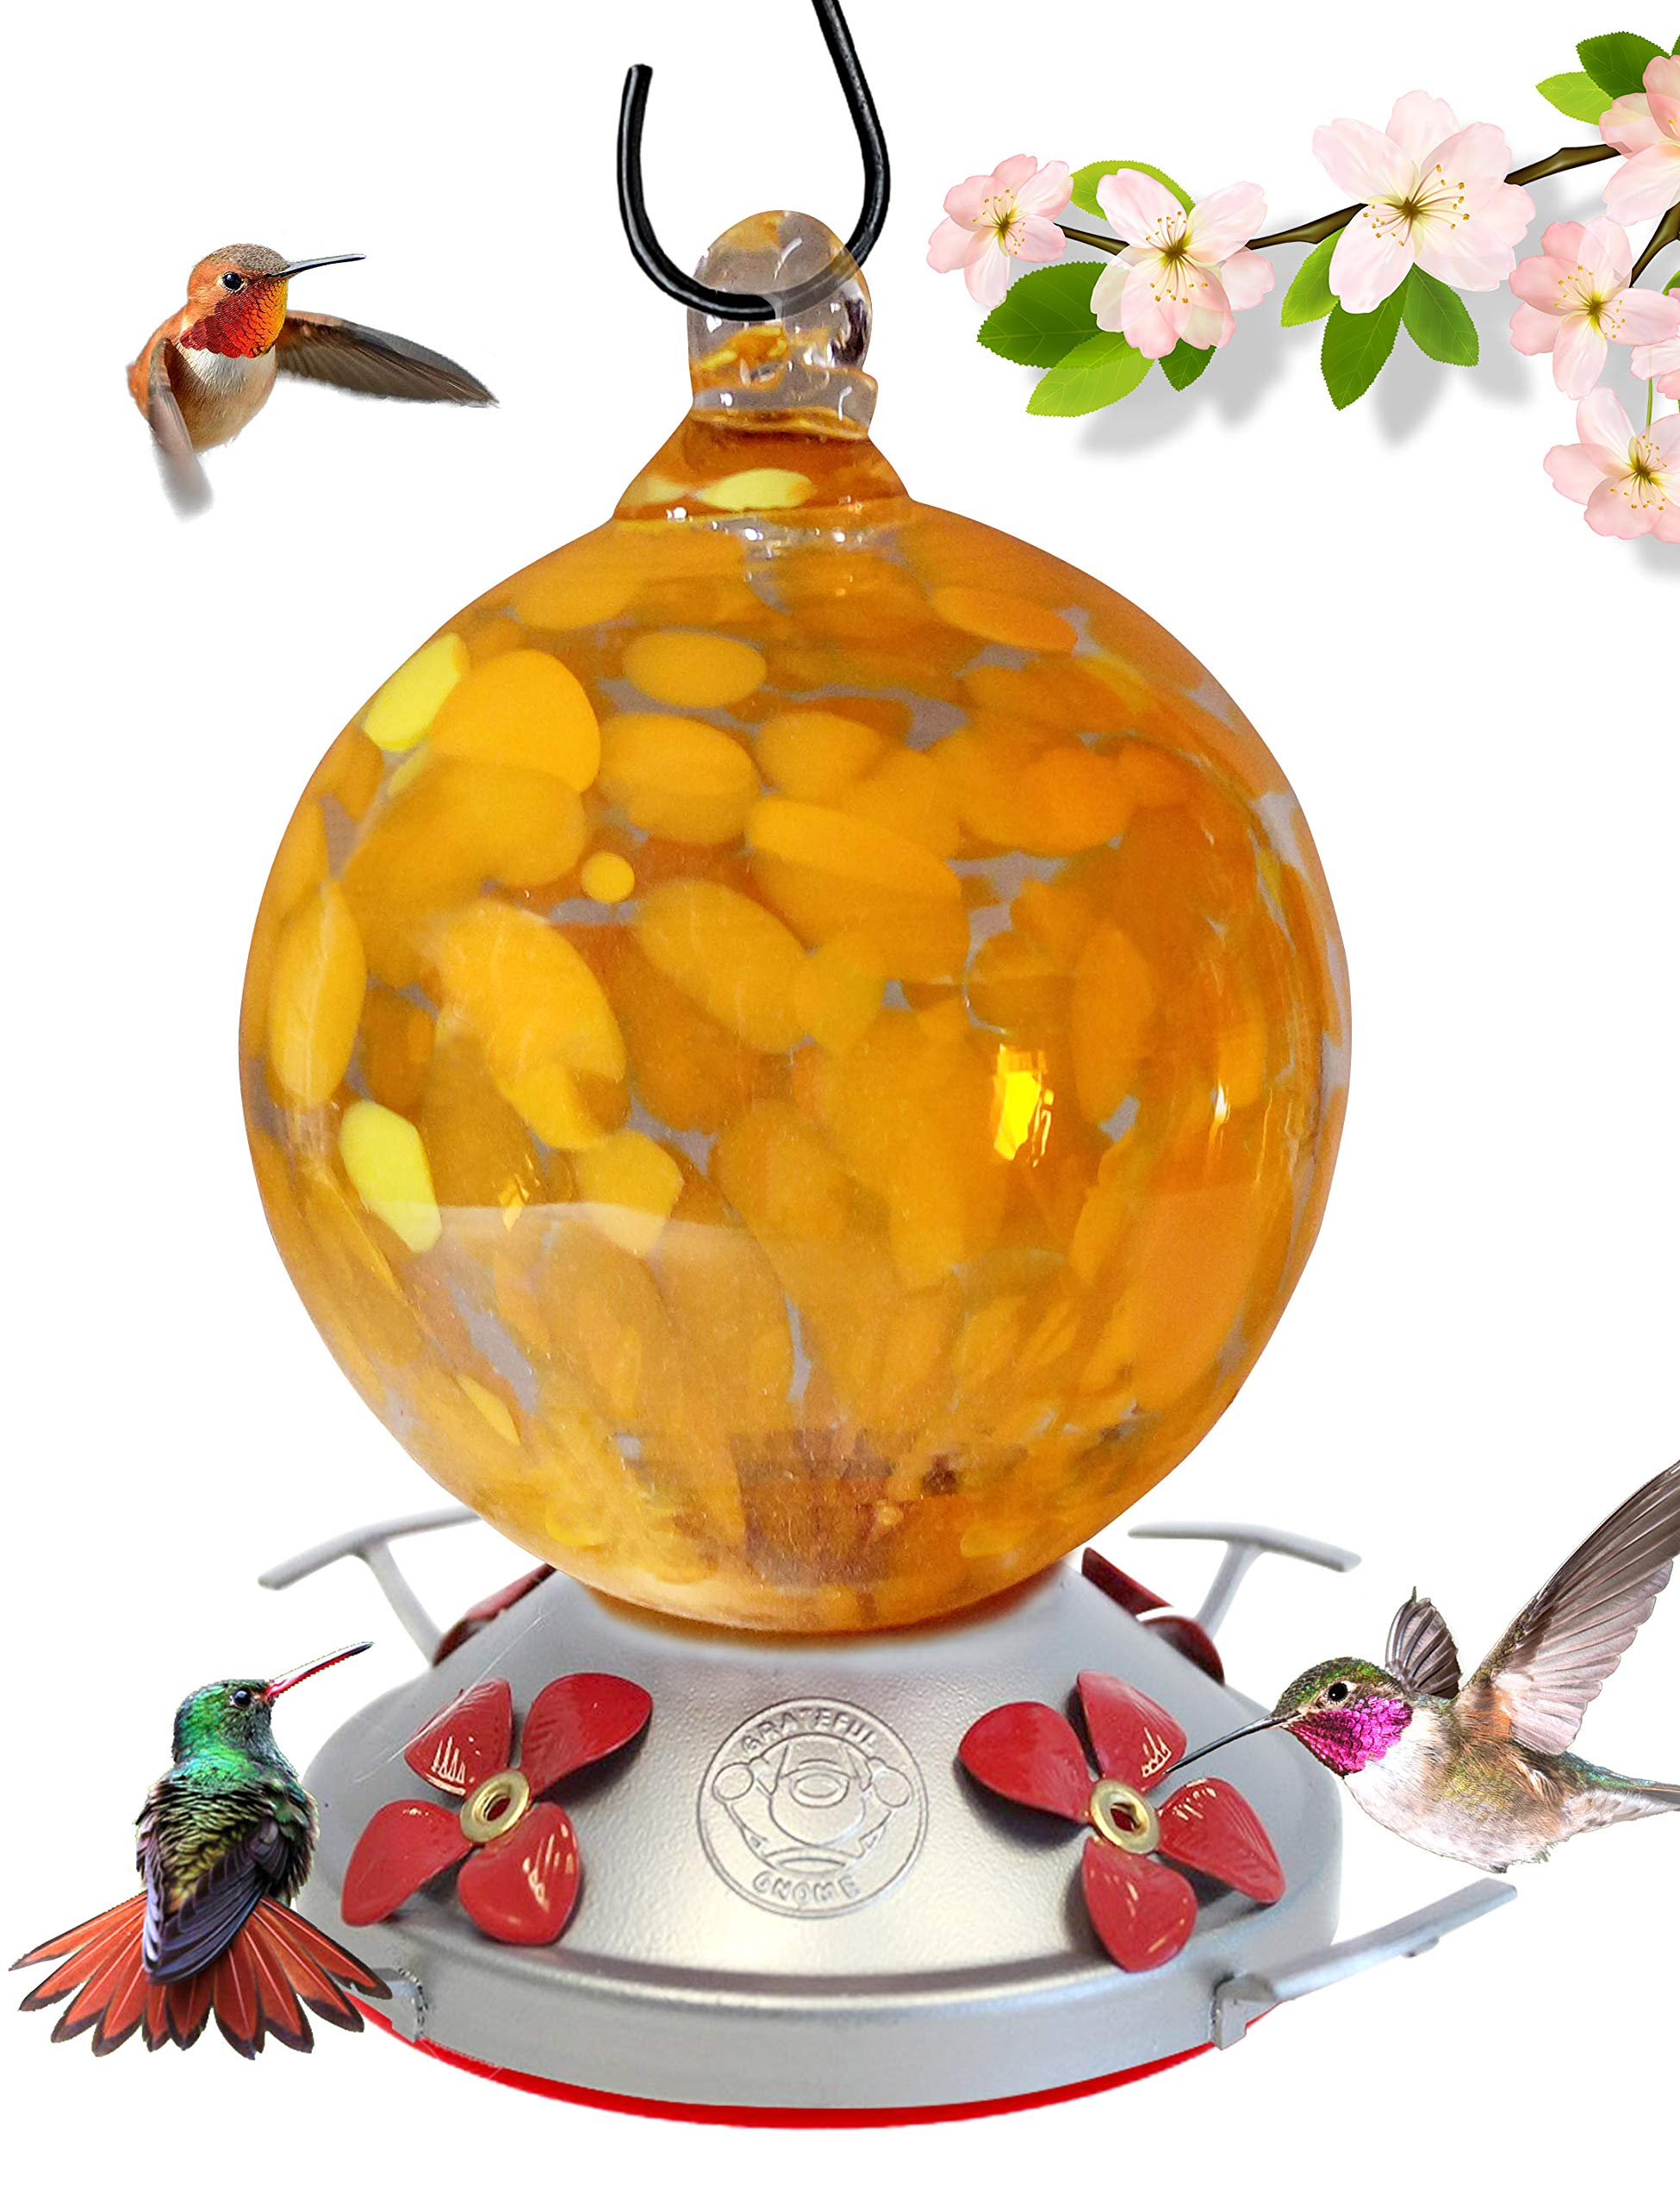 Grateful Gnome - Hummingbird Feeder - Hand Blown Glass - Orange Globe with Yellow Flowers - 24 Fluid Ounces